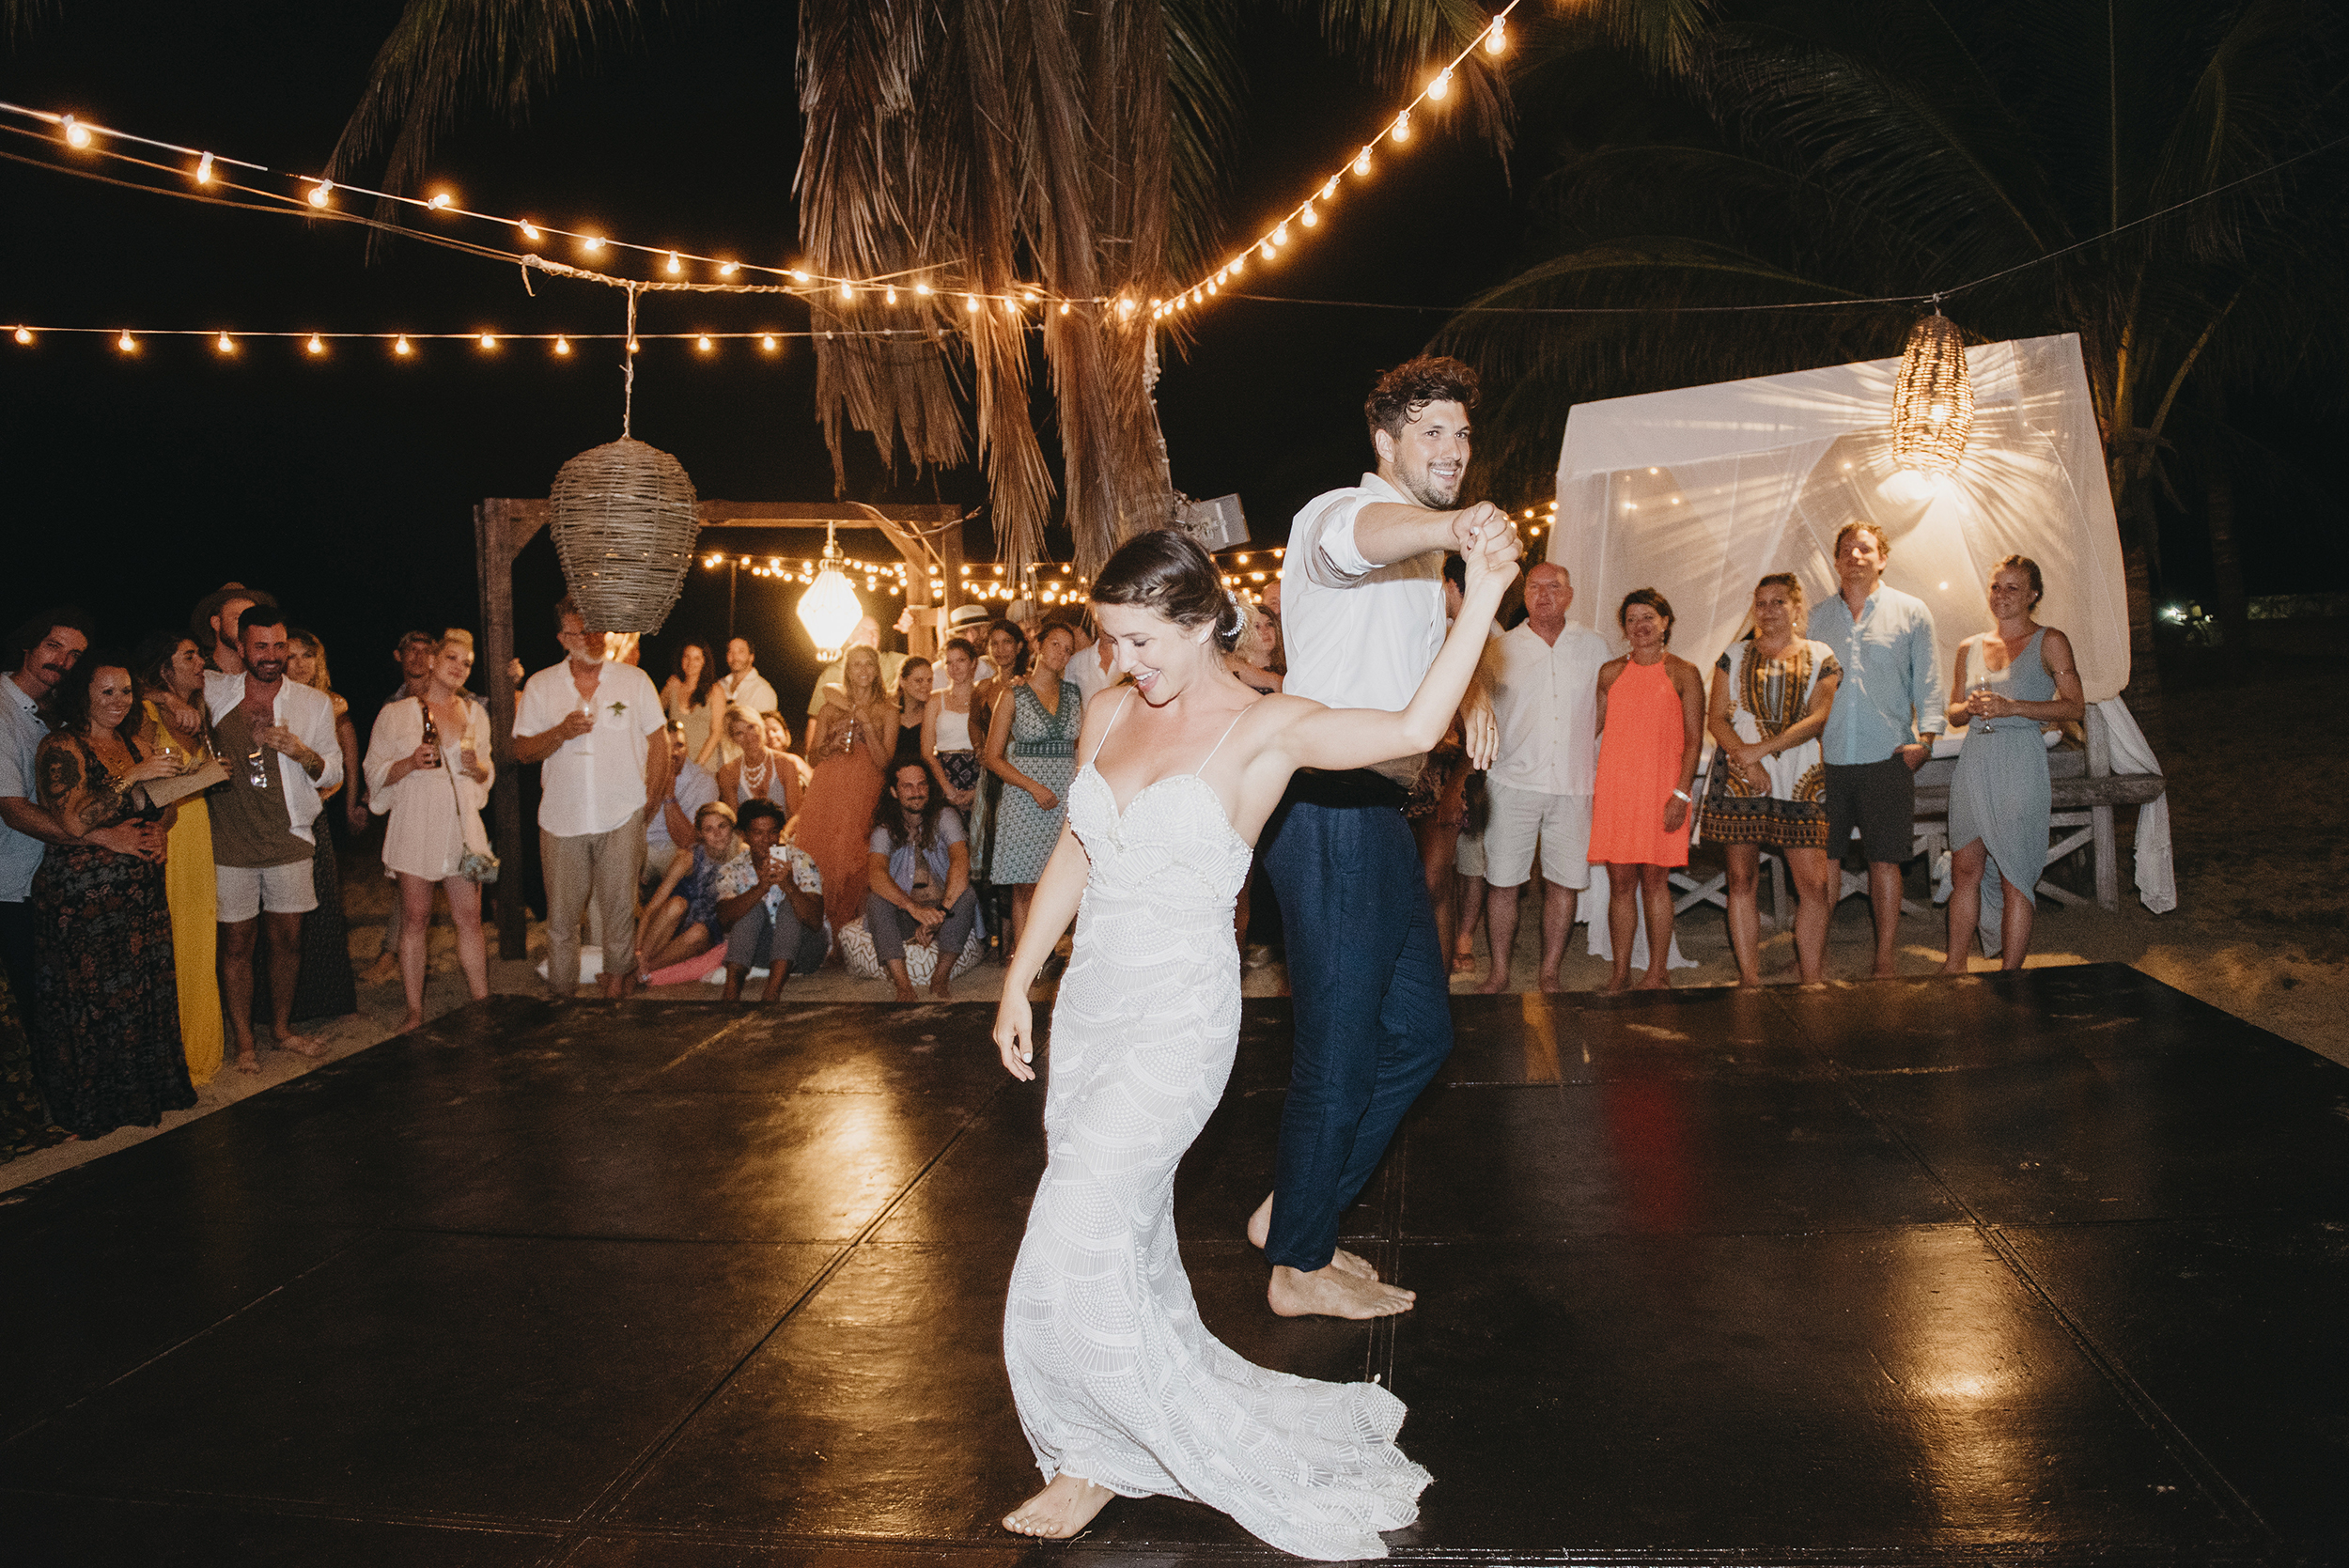 Colby-and-Jess-Intimate-Destination-Wedding-Sayulita-Puerto-Vallarta-Mexico822.jpg